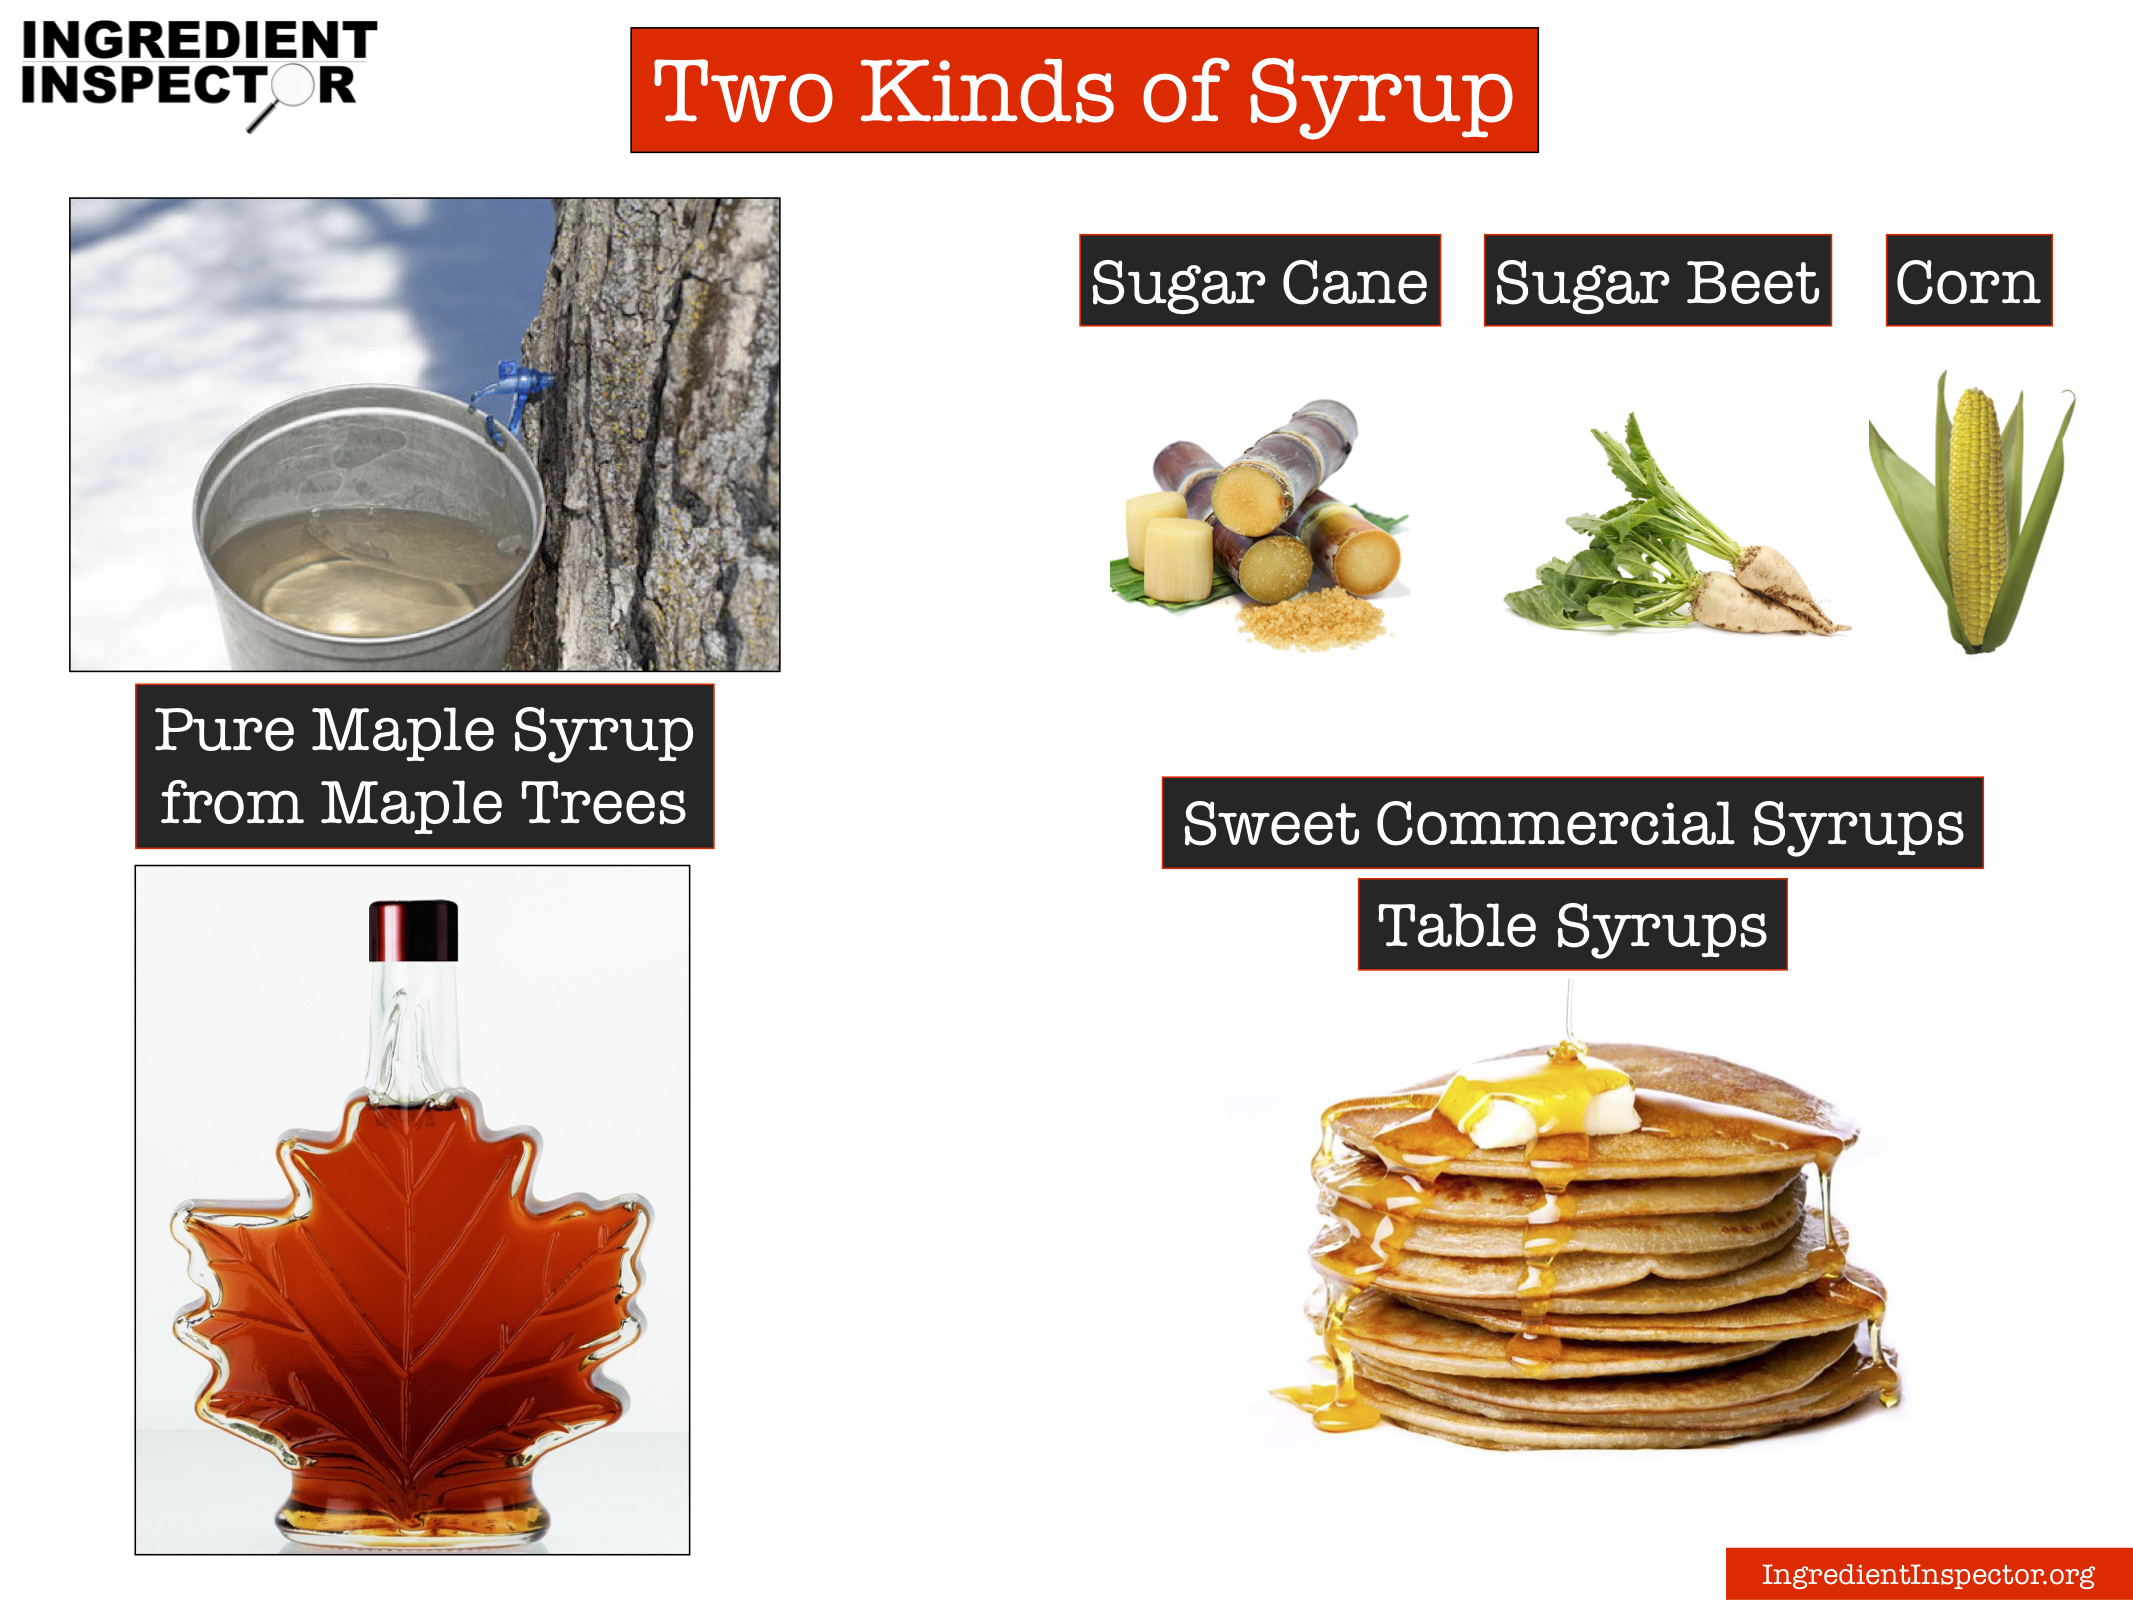 Ingredient Inspector Two Kinds of Syrup.jpg